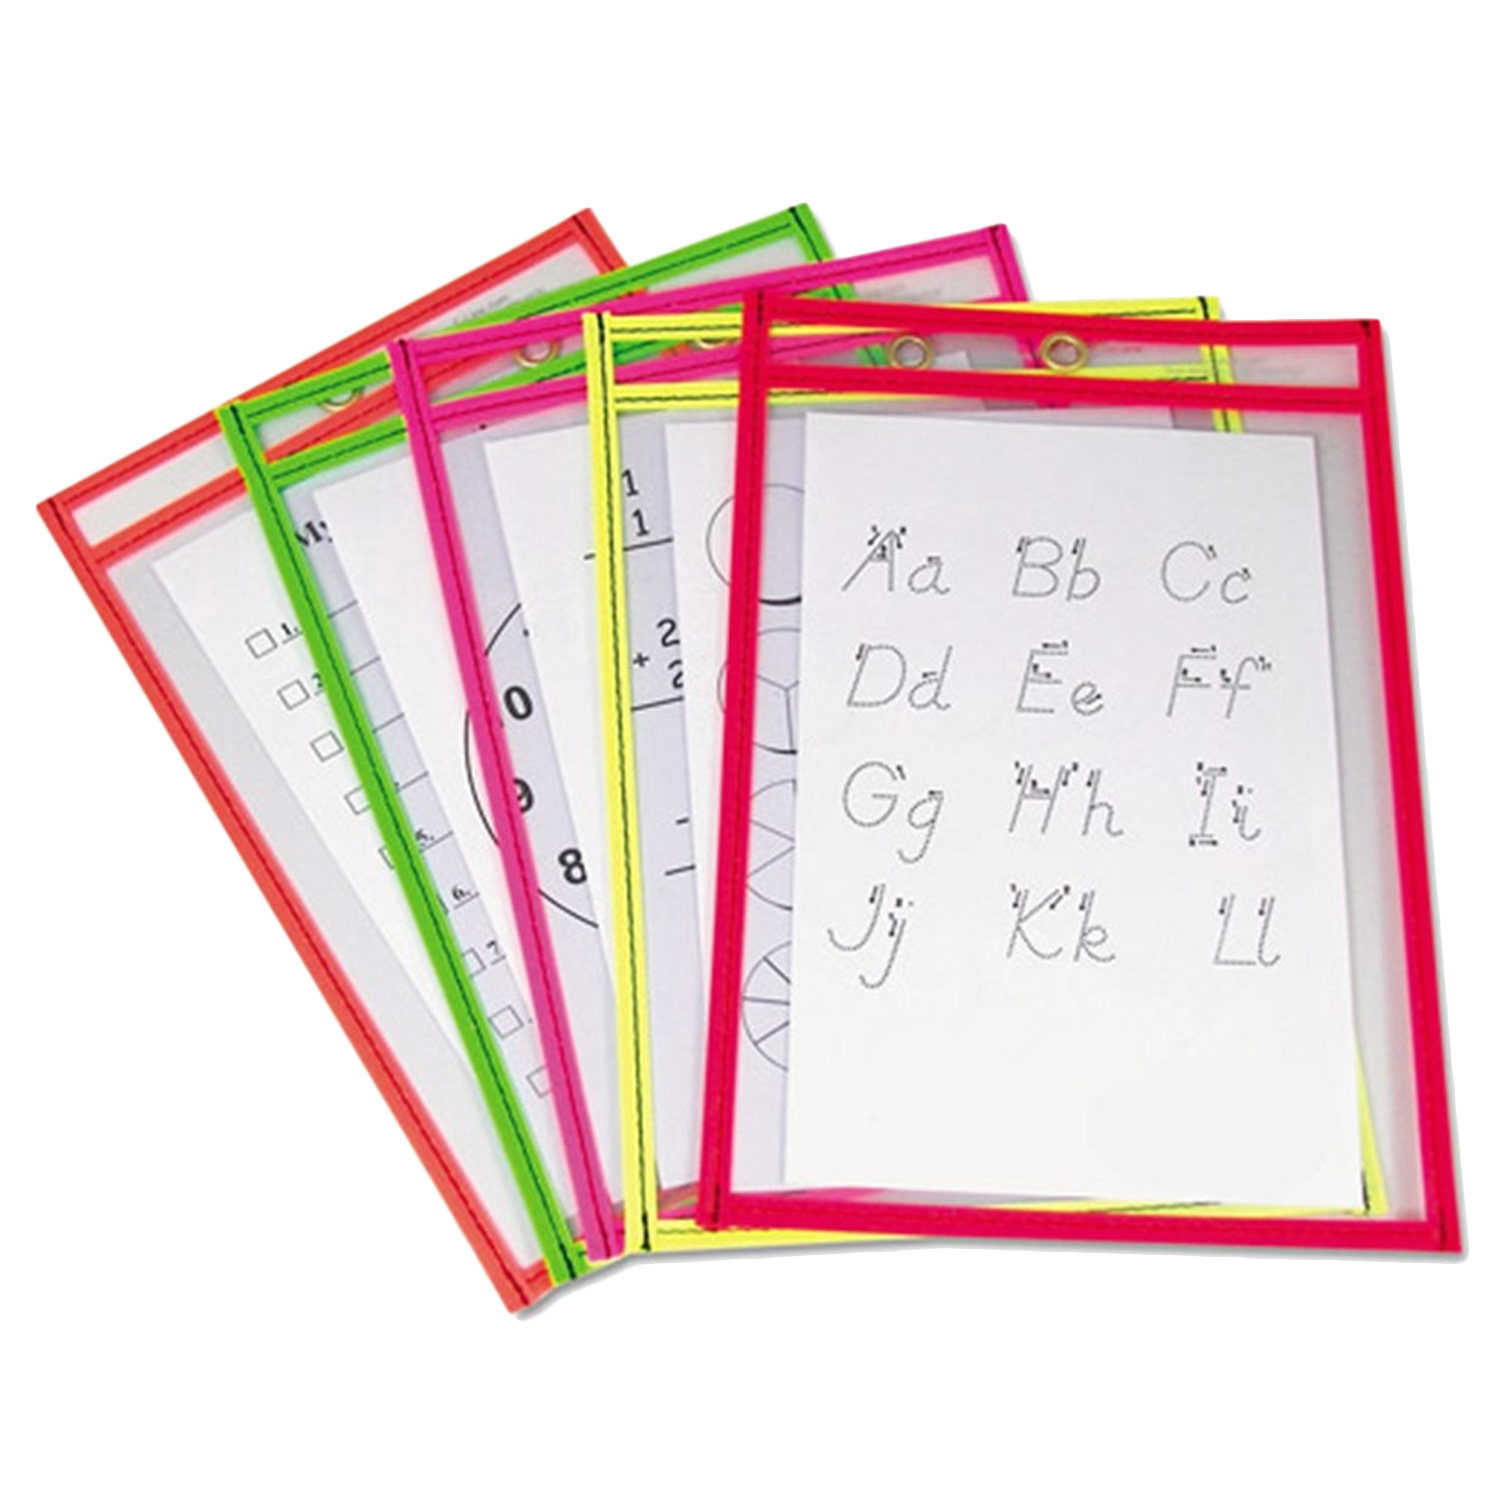 5PCS Reusable Clear PVC Dry Erase Pockets Sleeves + 3PCS Pens For Office Classroom Organization Teaching Supplies Random Color